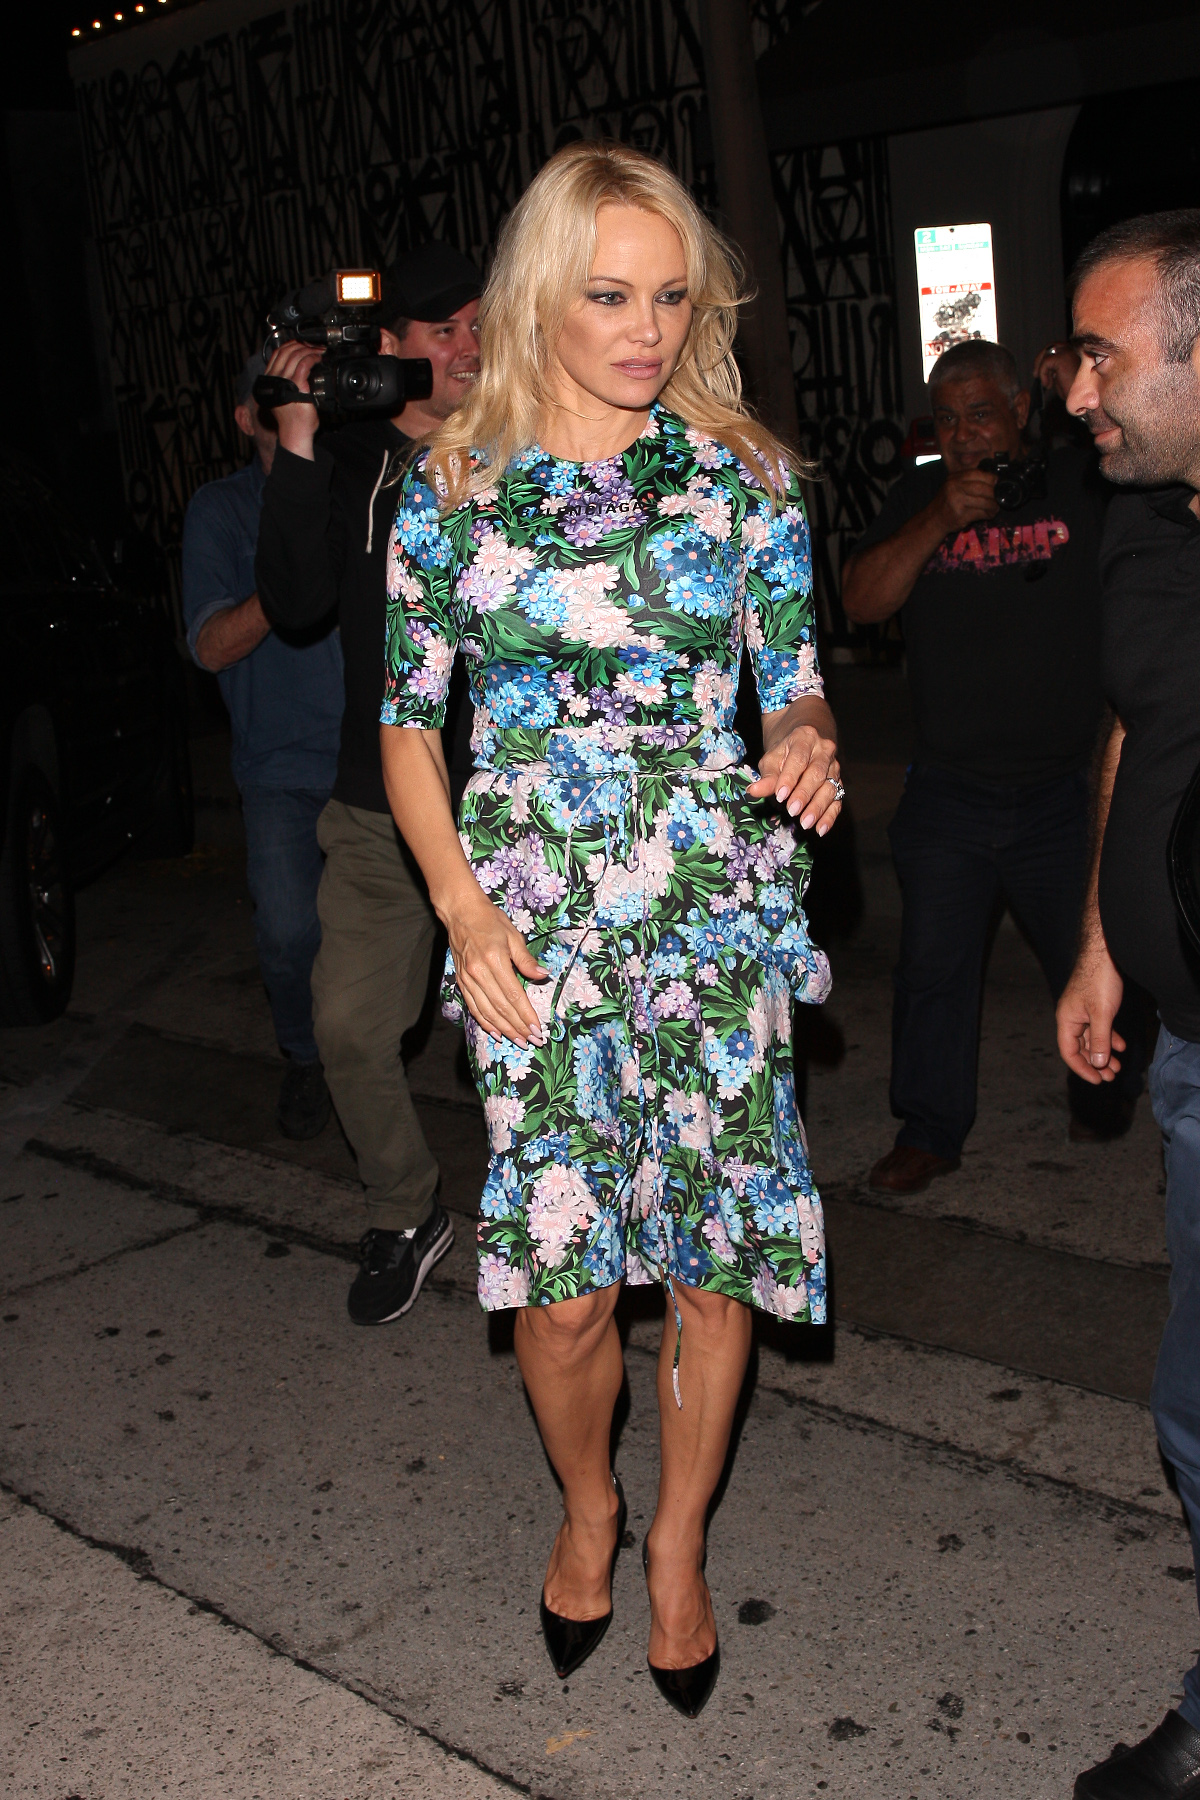 French world cup champion Adil Rami and his girlfriend Pamela Anderson are seen heading to Craig's restaurant for a romantic dinner date in West Hollywood. The couple arrived together at 10 P.M. and walked in separately. They left at 11:30 P.M. together. Pamela is wearing a beautiful floral dress. Adil is wearing ripped jeans. Onlookers inside the restaurant said that the couple were very affectionate and couldn't stop staring at each other.  Pictured: Adil Rami and Pamela Anderson Ref: SPL5011984 240718 NON-EXCLUSIVE Picture by: Photographer Group / SplashNews.com  Splash News and Pictures Los Angeles: 310-821-2666 New York: 212-619-2666 London: 0207 644 7656 Milan: +39 02 4399 8577 Sydney: +61 02 9240 7700 photodesk@splashnews.com  World Rights